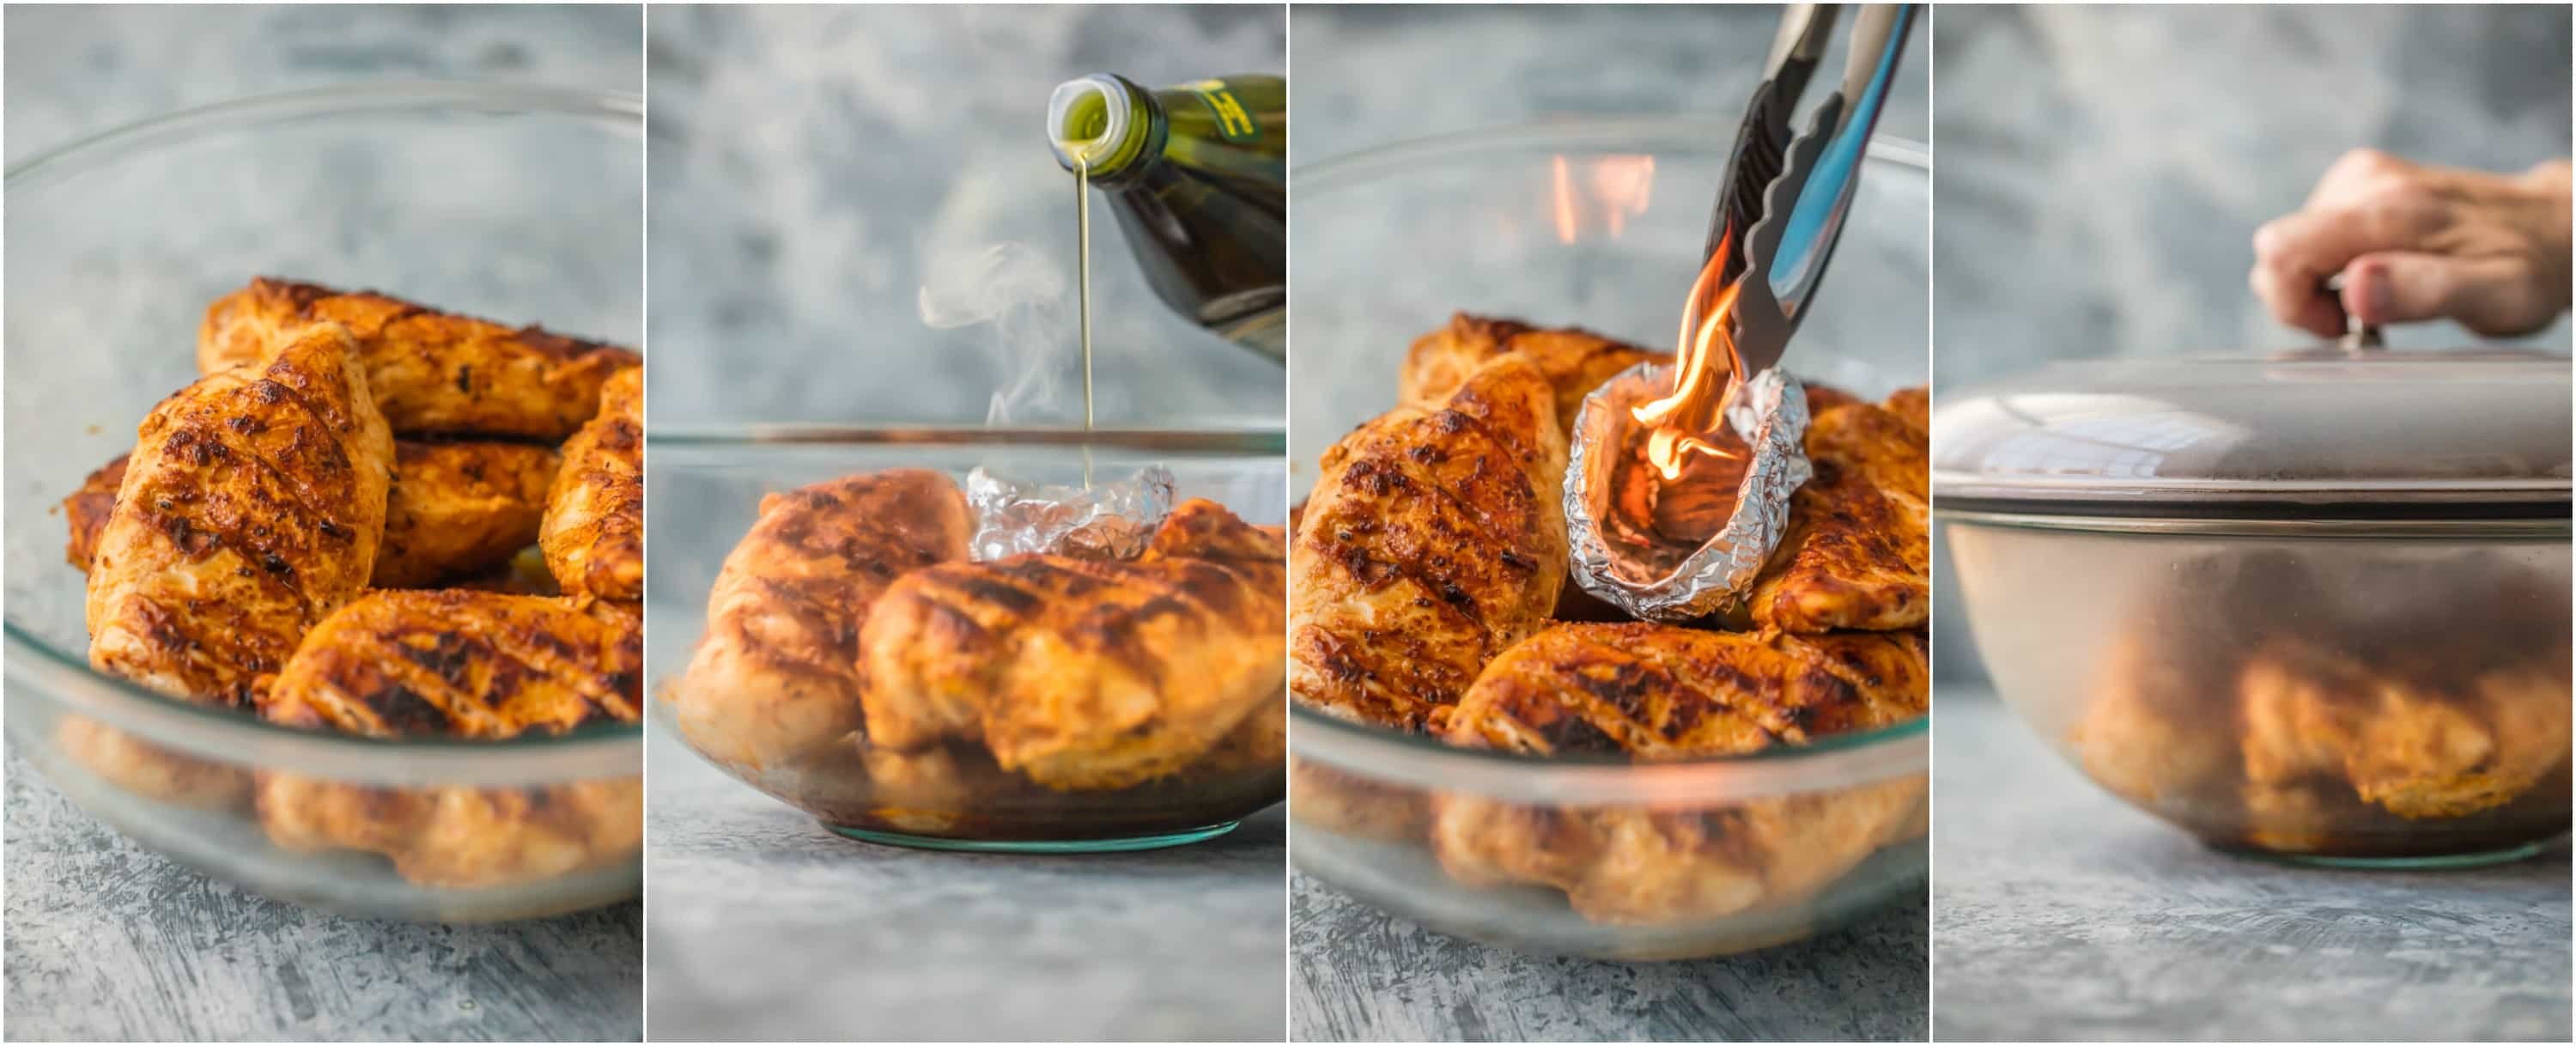 photo collage of chicken tandoori being smoked